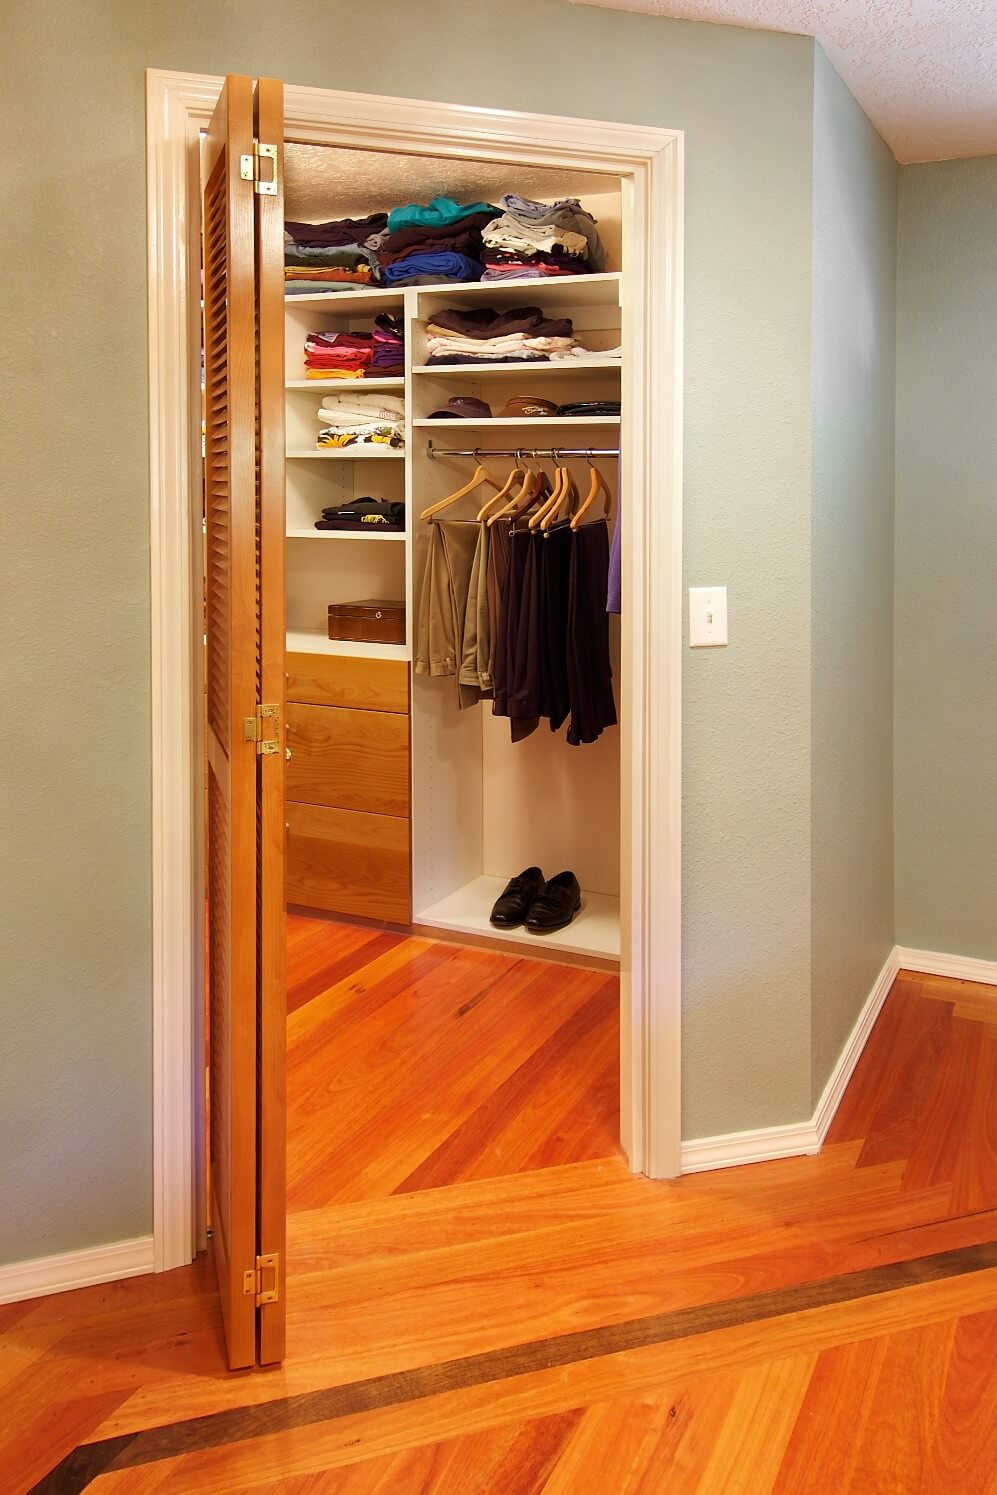 The remodeled master suite includes a well-organized walk-in closet.